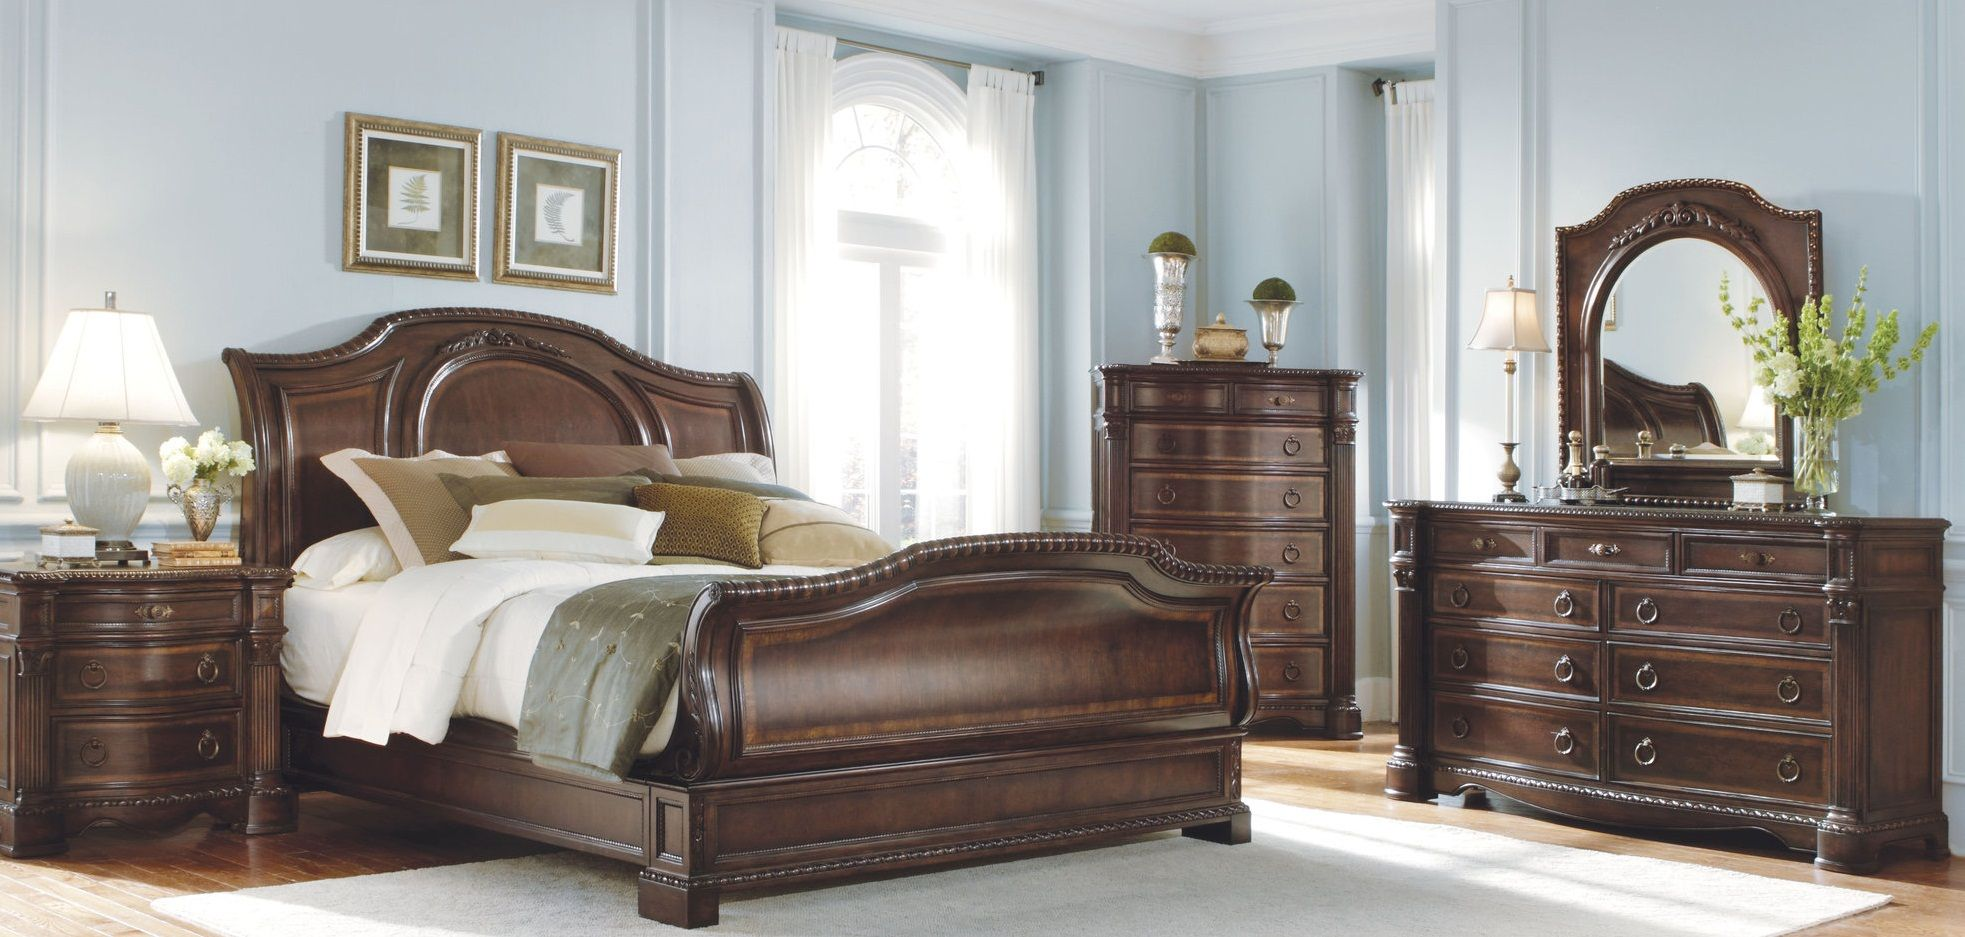 Go online and shop for the desire furniture available with the best price. http://daydreamfurniture.com/